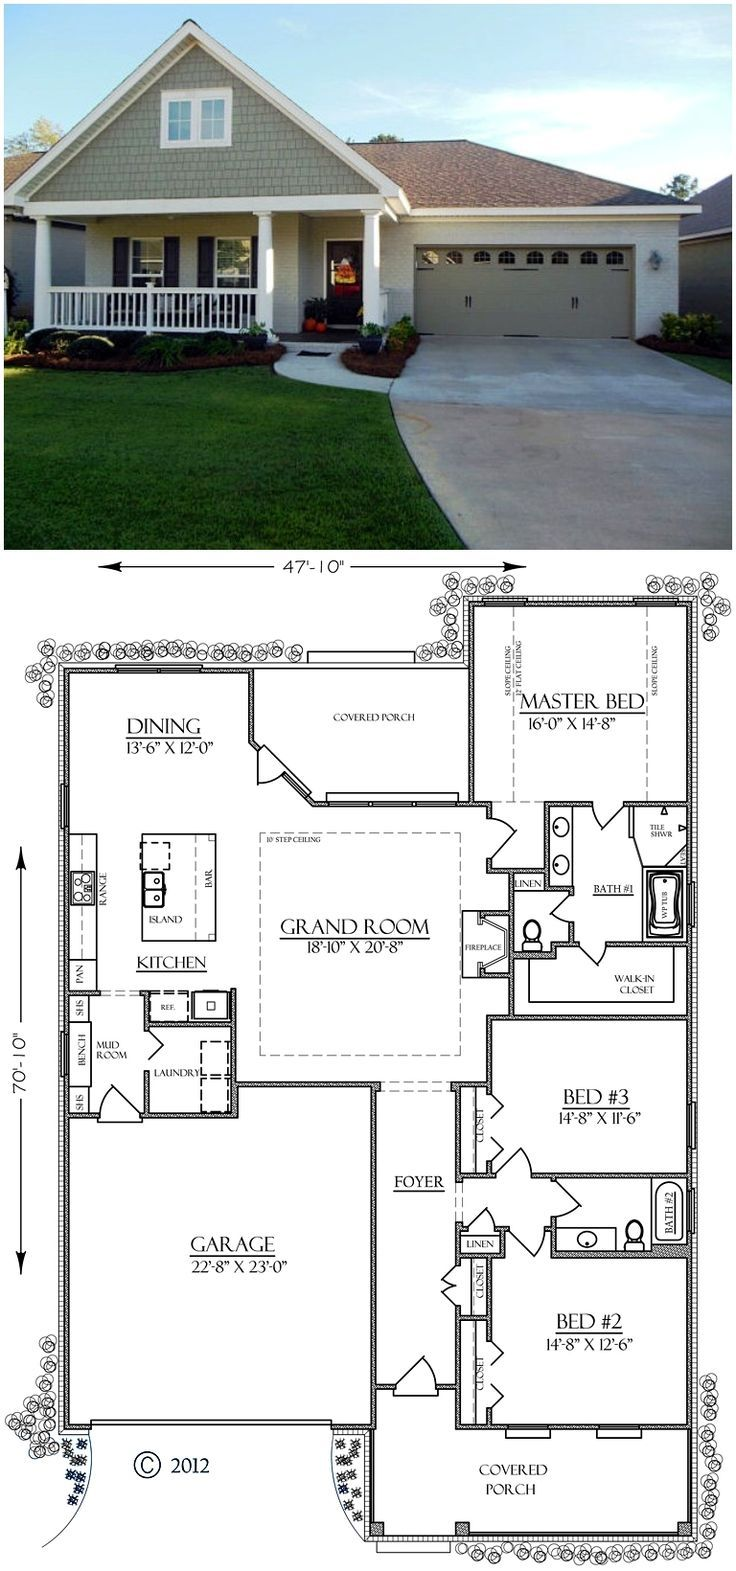 House Plan 74755 Finally One I Wouldn T Change Structurally Just Screen In Www Best Dream Homes X New House Plans Craftsman House Plans Best House Plans